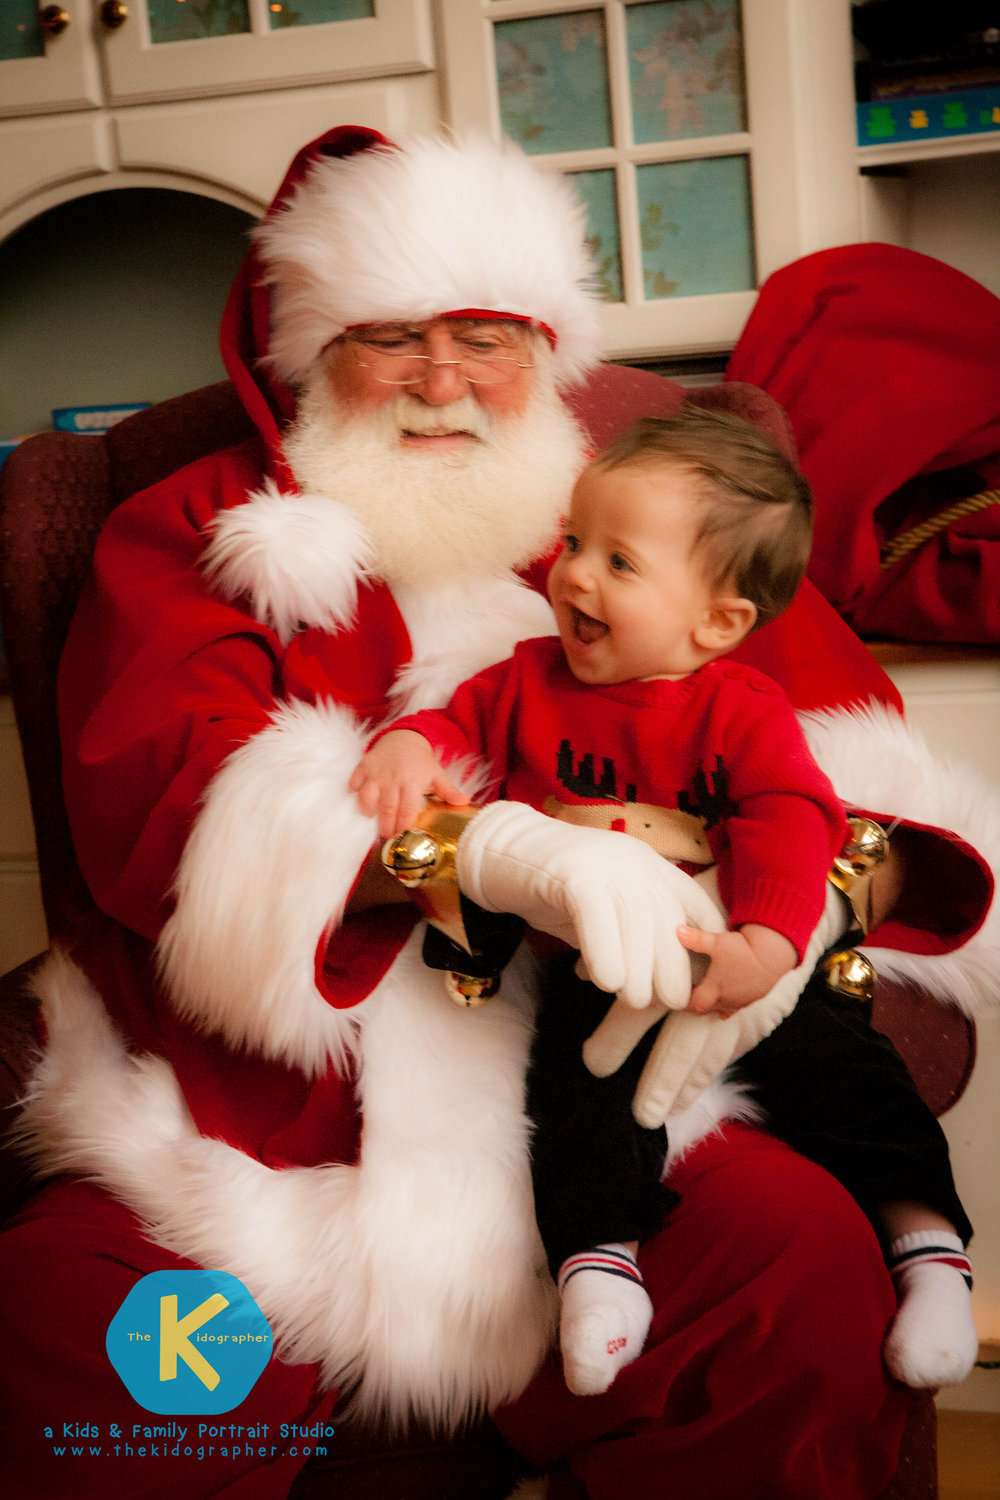 THE_KIDOGRAPHER_PHOTOS_WITH_SANTA-20.jpg